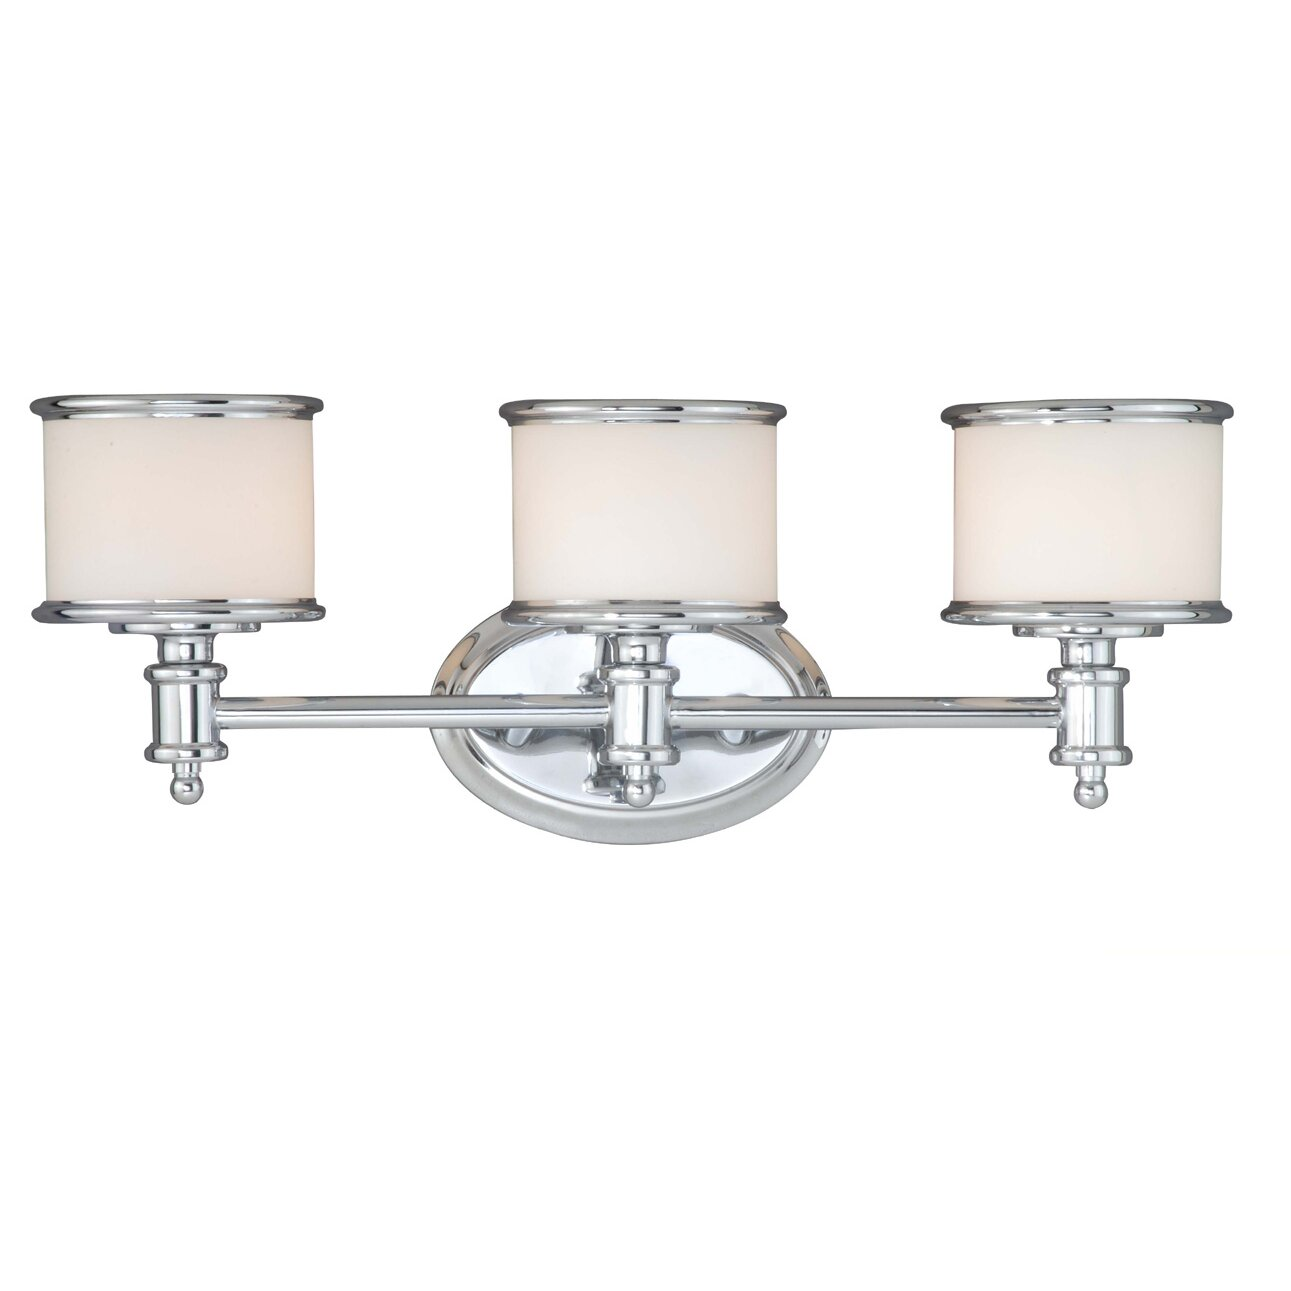 Darby Home Co Bogan 3 Light Vanity Light Amp Reviews Wayfair